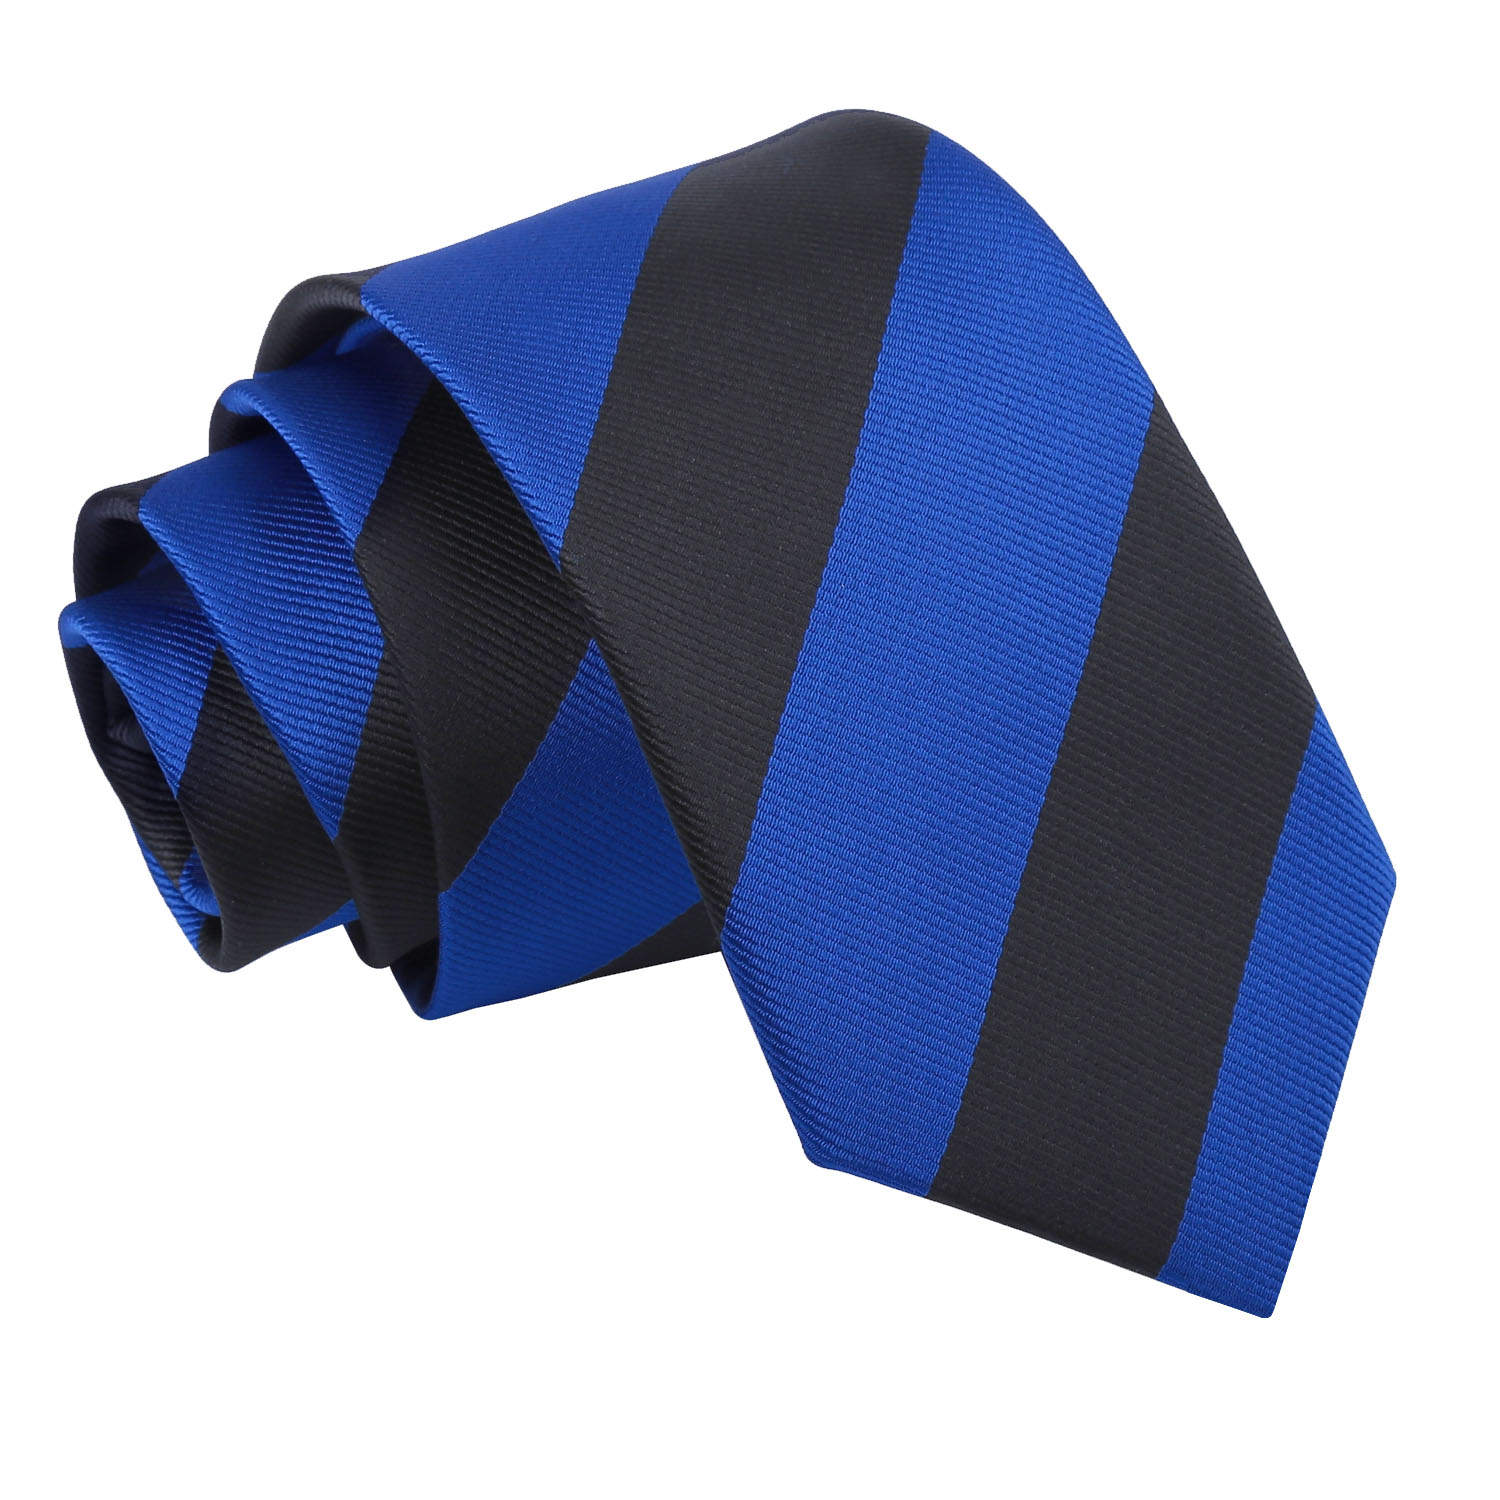 Striped Slim Tie - Royal Blue & Black, Clothing & Accessories by Low Cost Gifts